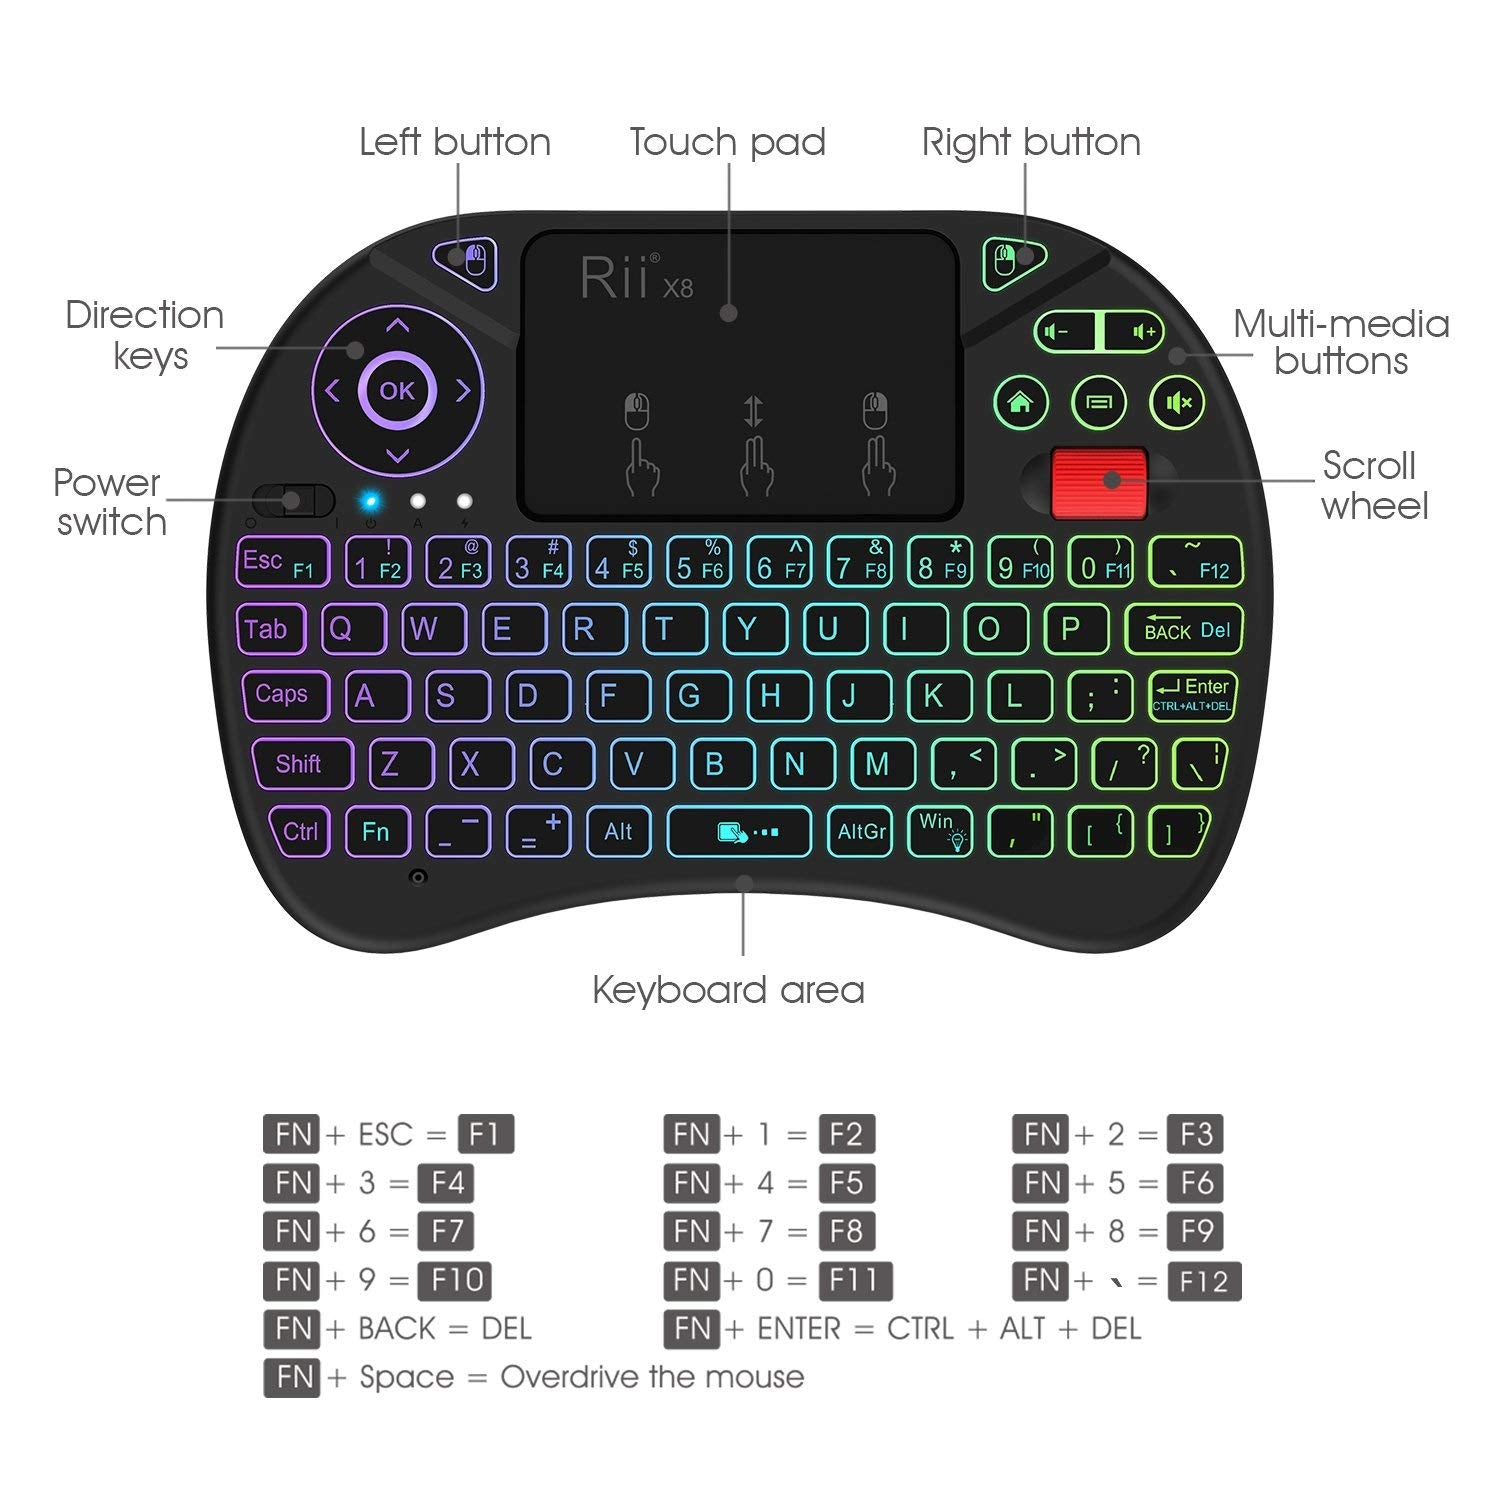 Rii QWERTY RGB Backlighting Media Touchpad with Scroll Wheel - Black | Monthly Madness